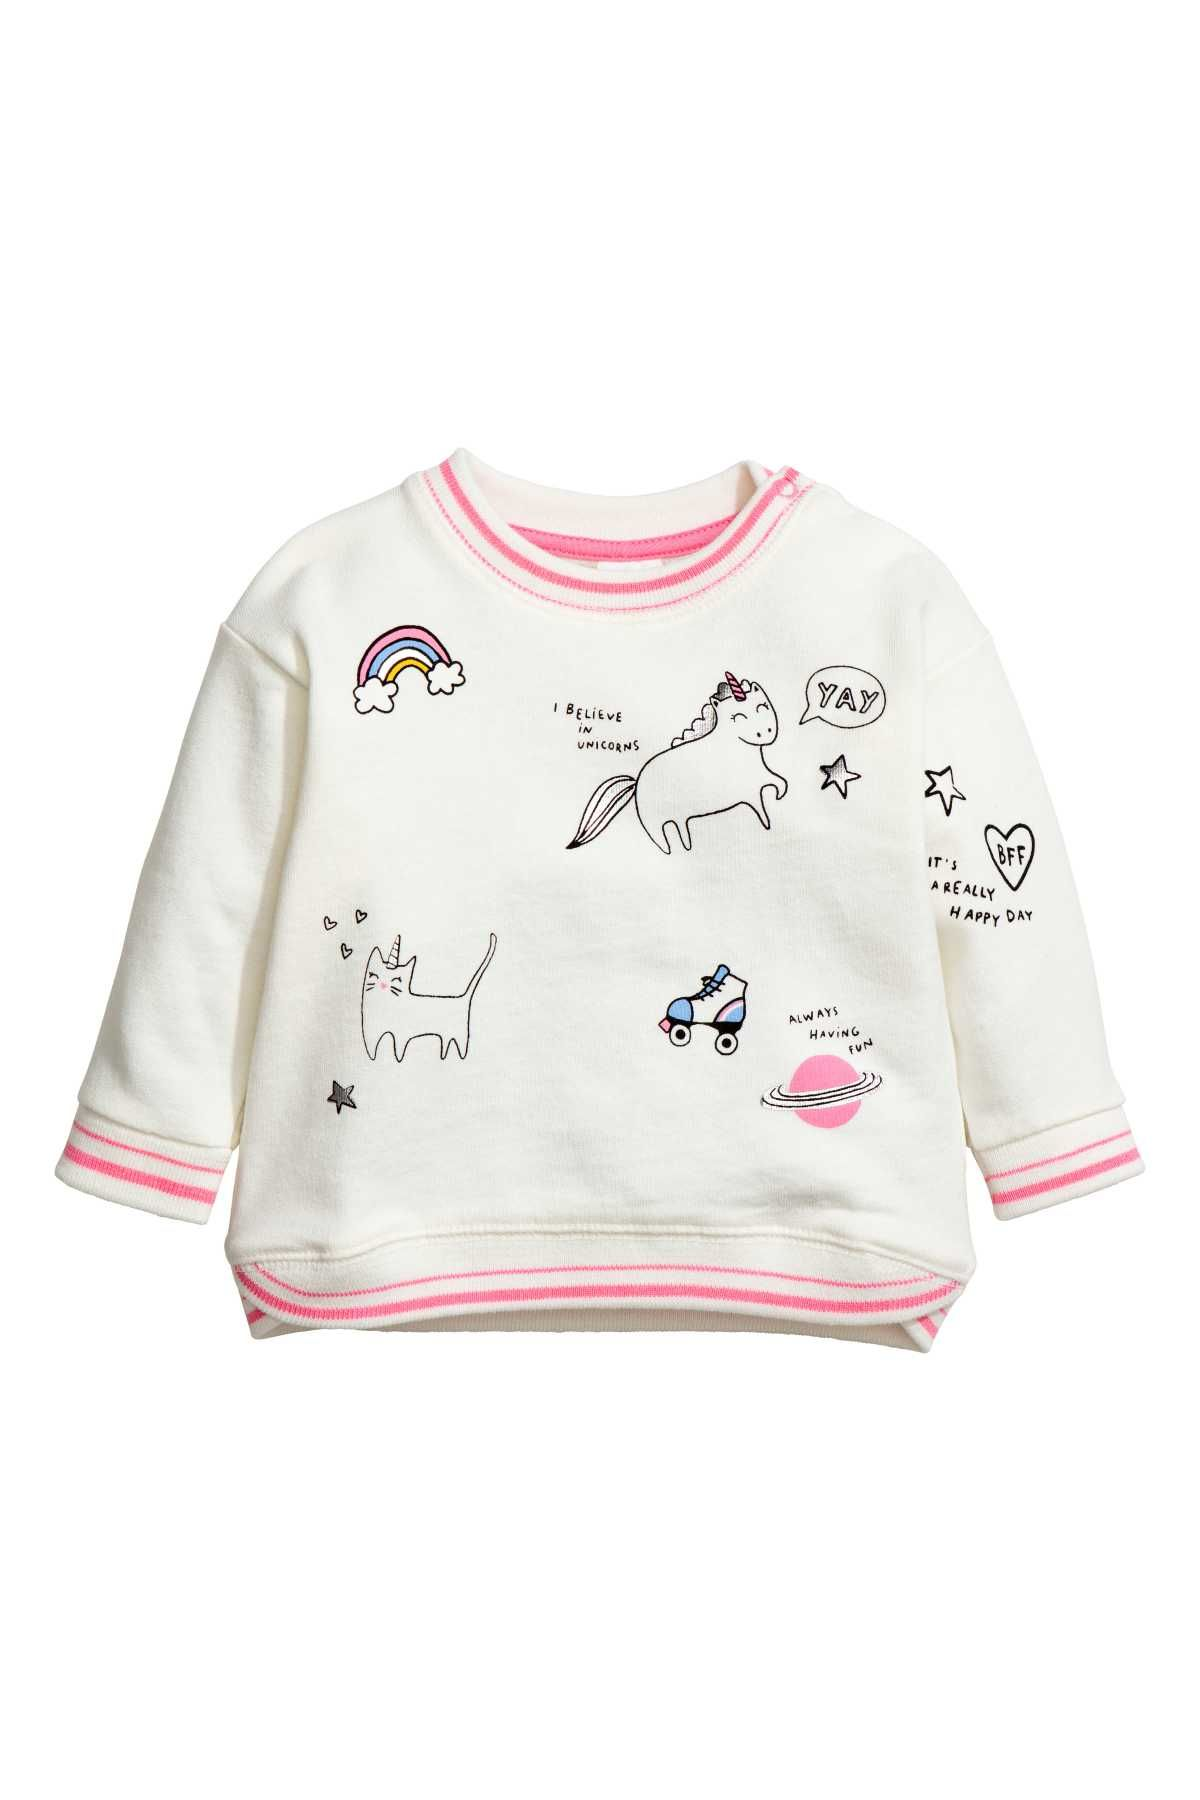 Natural White Unicorn Long Sleeved Sweatshirt With A Printed Design Snap Fastener On One Shoulder Printed Sweatshirts Baby Girl Sweatshirt Kids Clothes Sale [ 1800 x 1200 Pixel ]